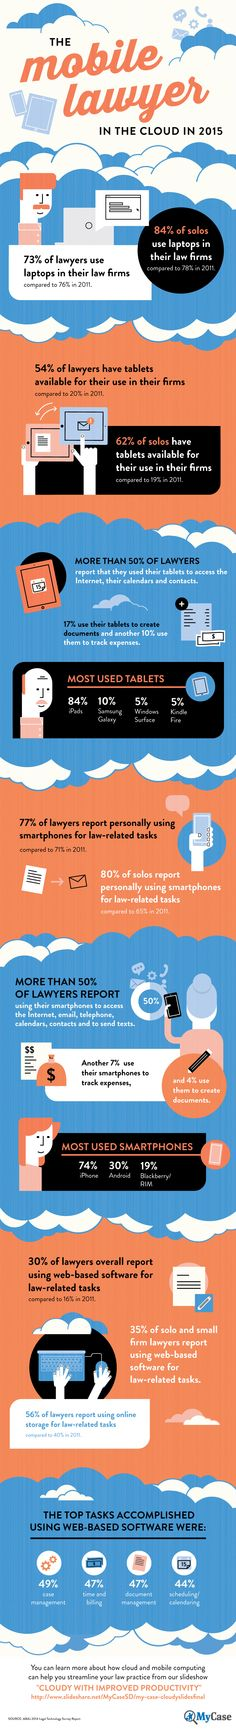 The Mobile Lawyer In The Cloud In 2015 [INFOGRAPHIC]